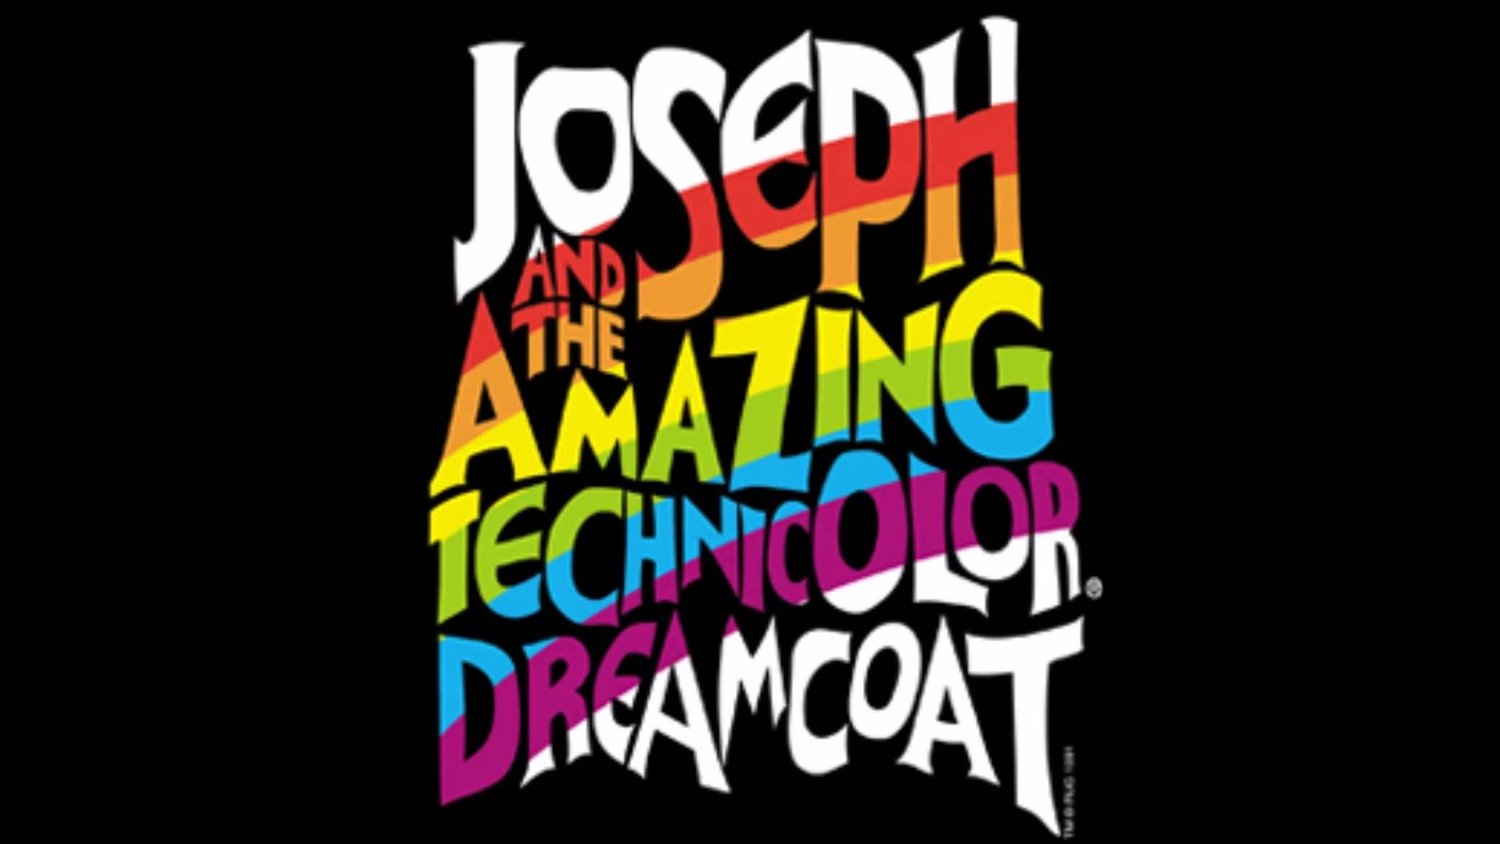 JOSEPH AND THE AMAZING TECHNICOLOR DREAMCOAT will be an Animated Film